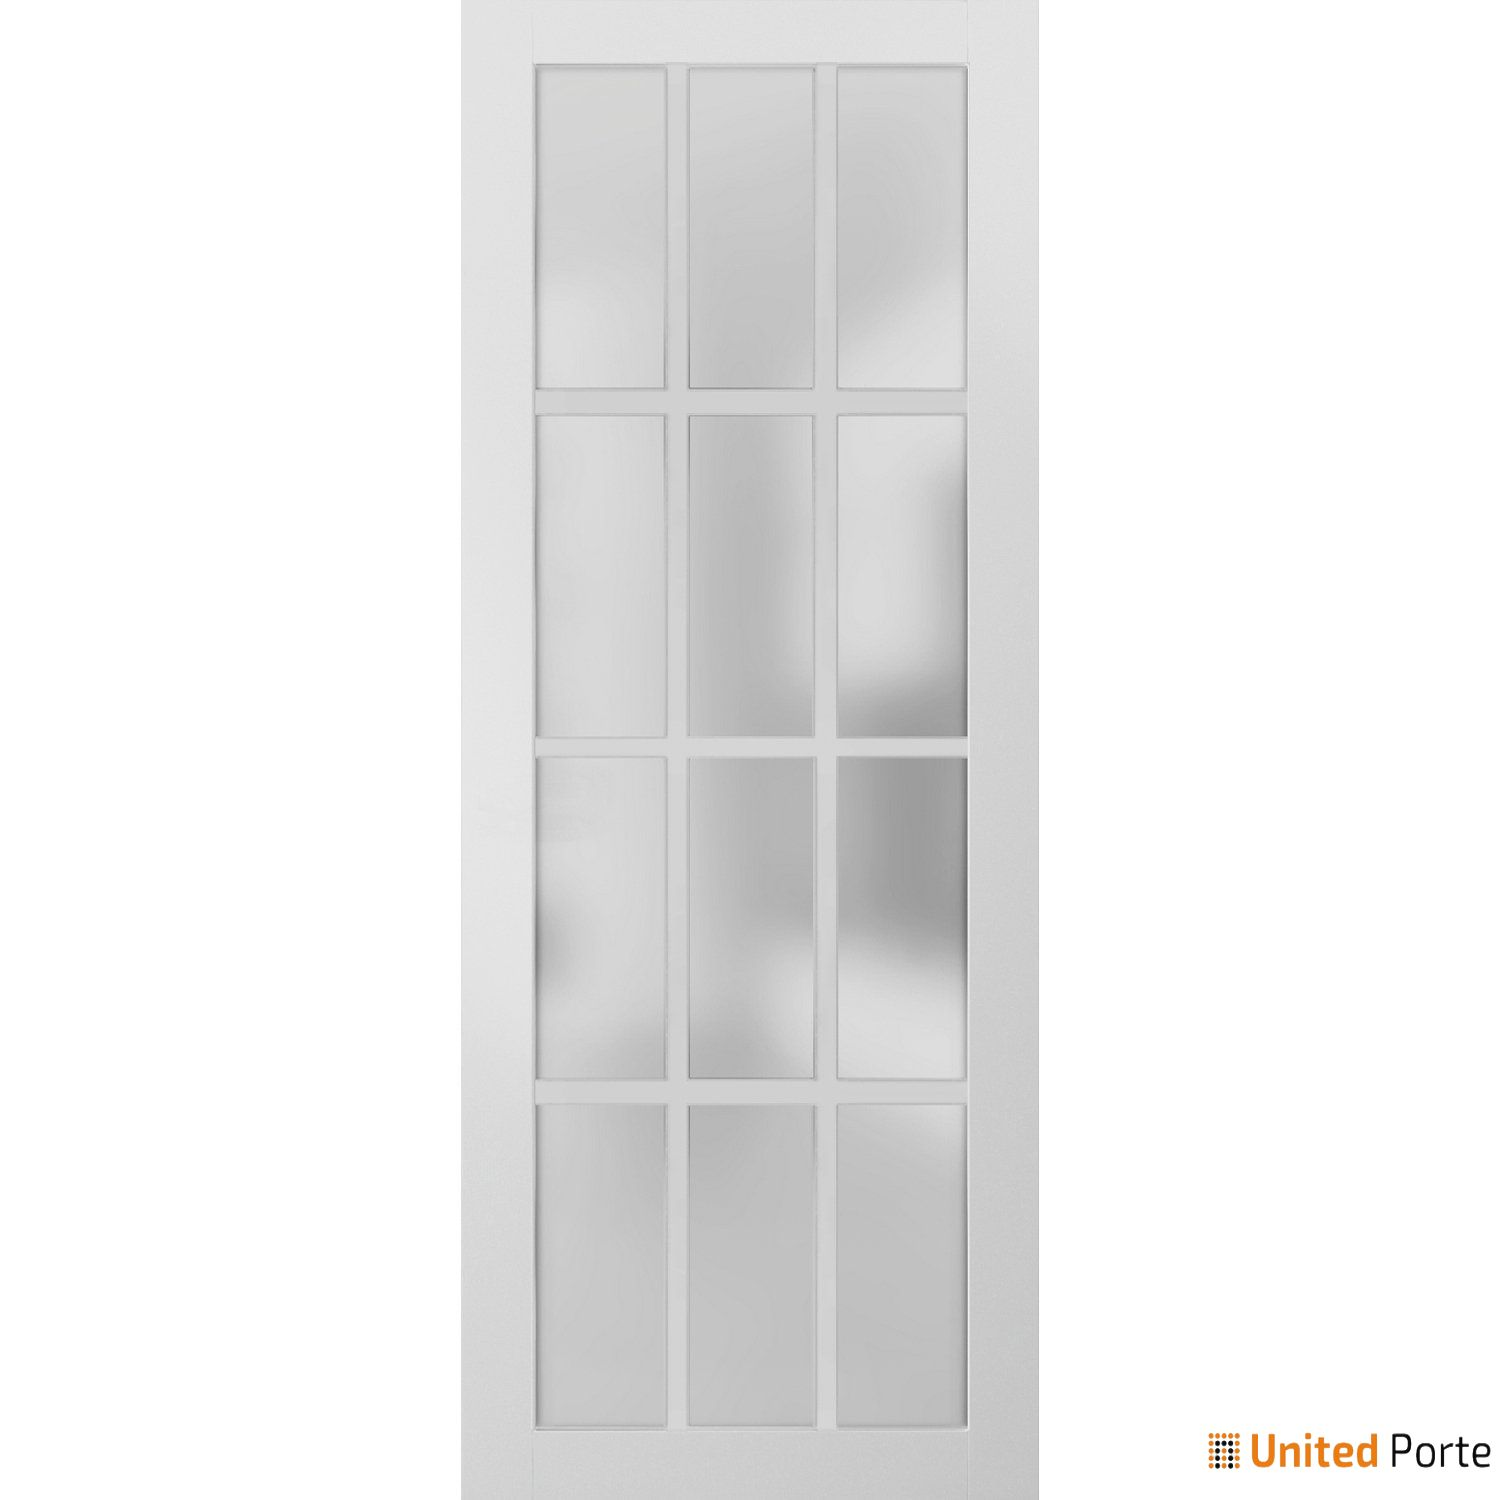 Felicia 3312 White Sturdy Barn Door Frosted Glass 12 Lites Slab | Solid Panel Interior Barn Doors